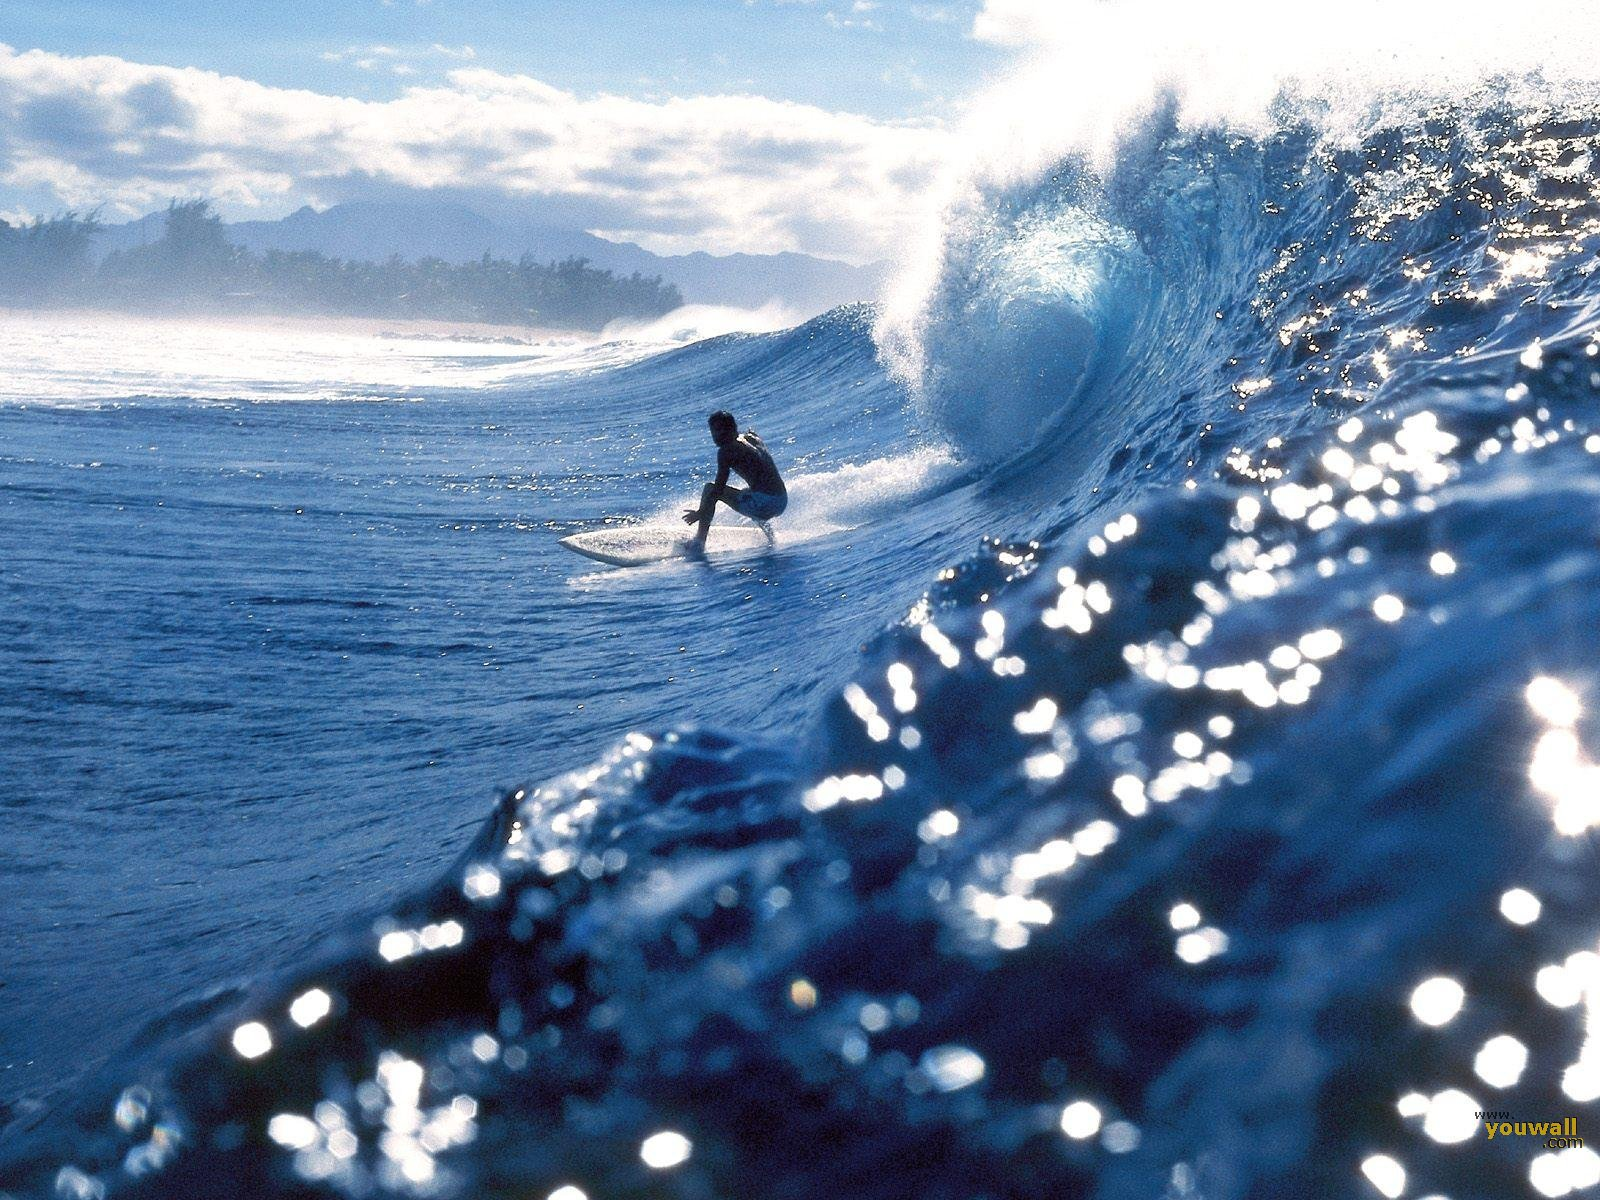 Surfing Wallpaper hd backgrounds | High Quality Wallpapers,Wallpaper ...